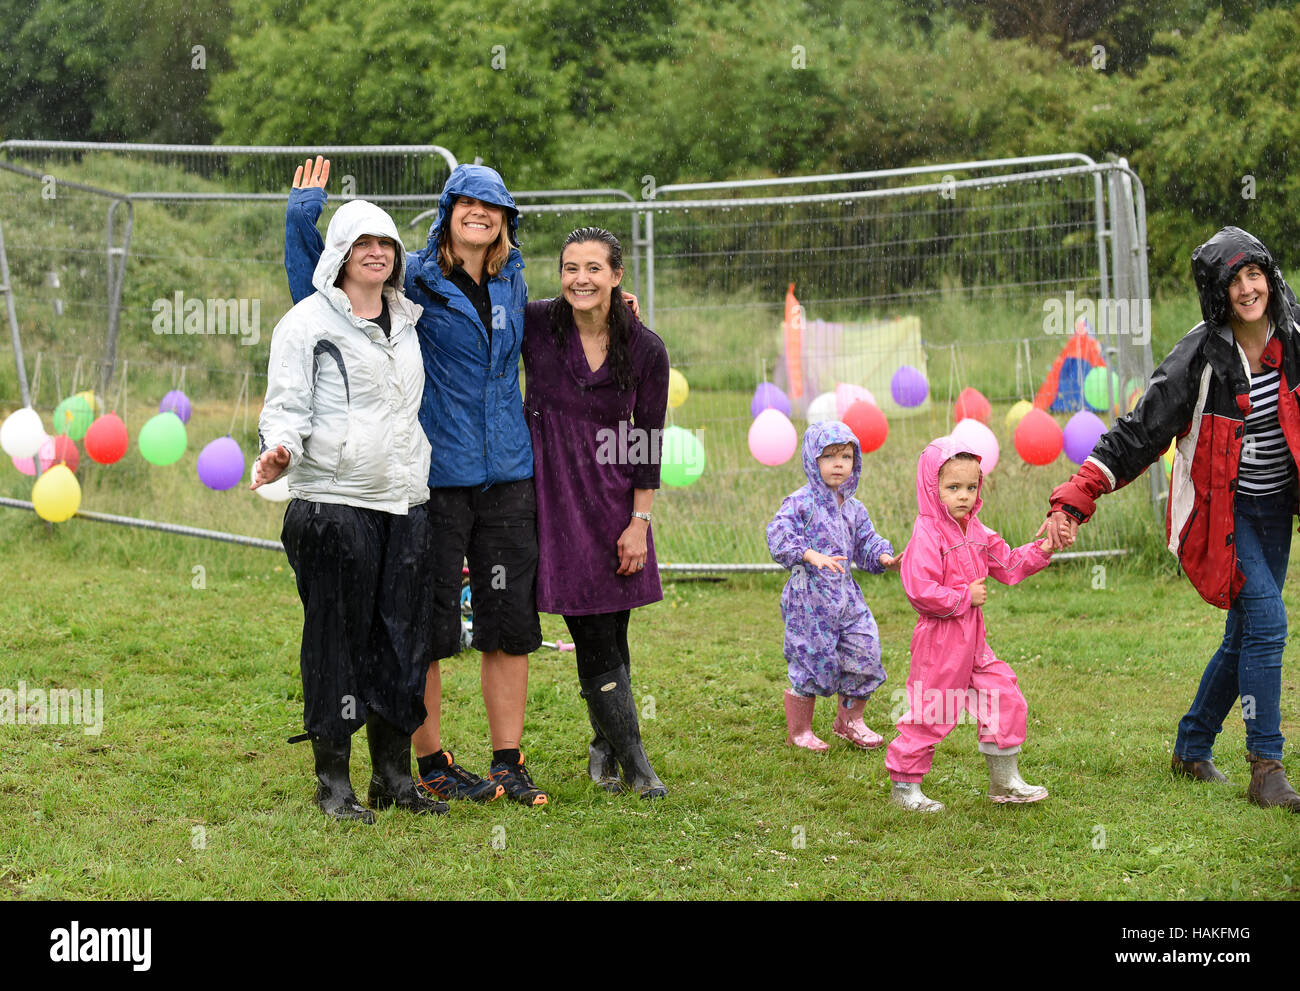 Smiling in the rain! Women and children having fun despite wet weather at an English summer fete Uk - Stock Image